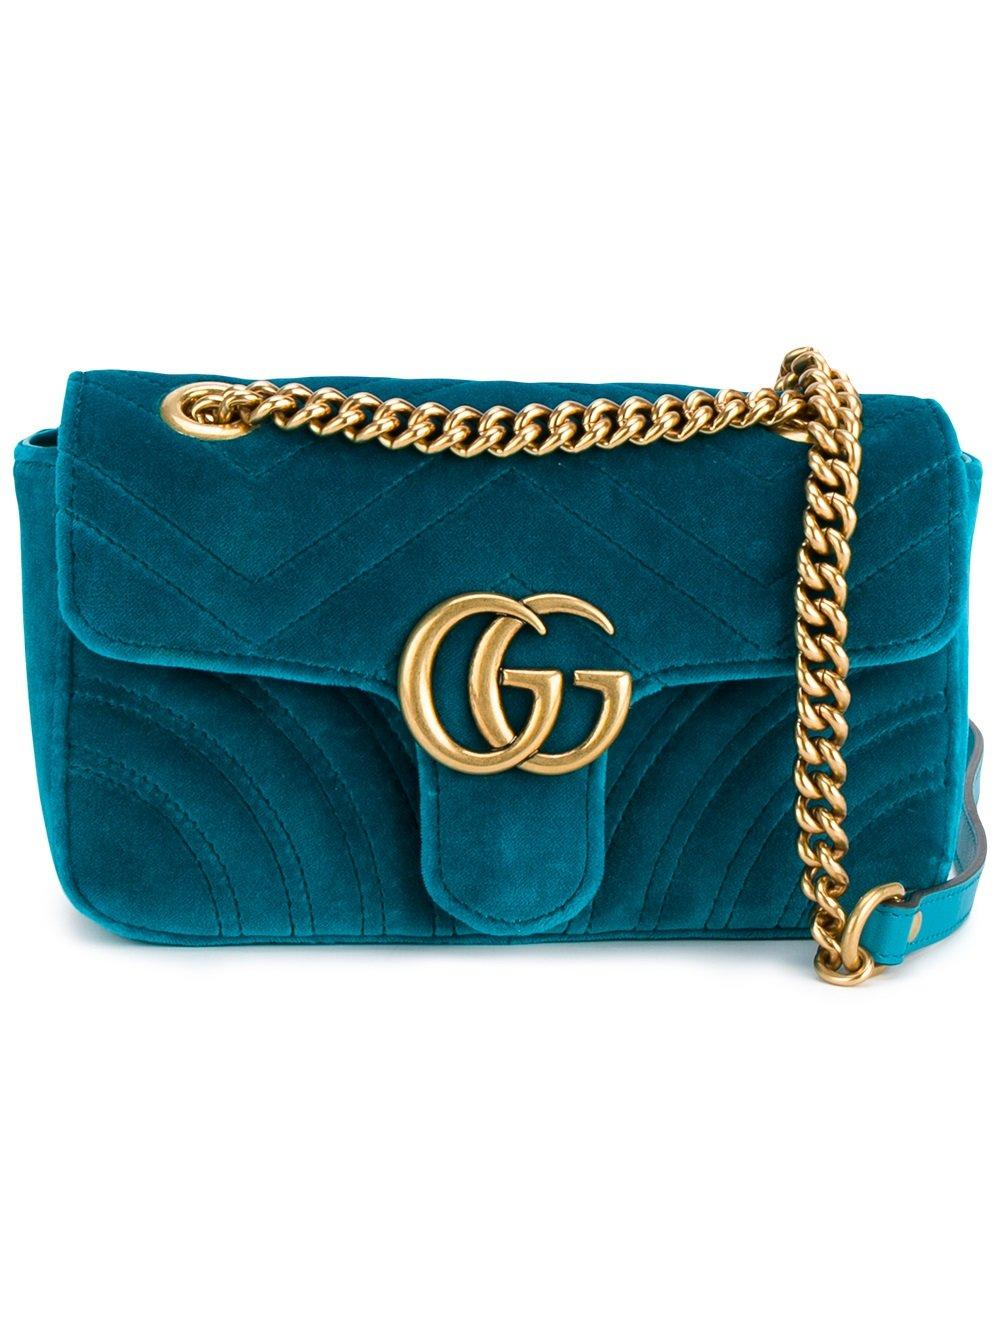 31bb5cd6a71df4 Gucci Marmont Small Shoulder Bag Green | Stanford Center for ...